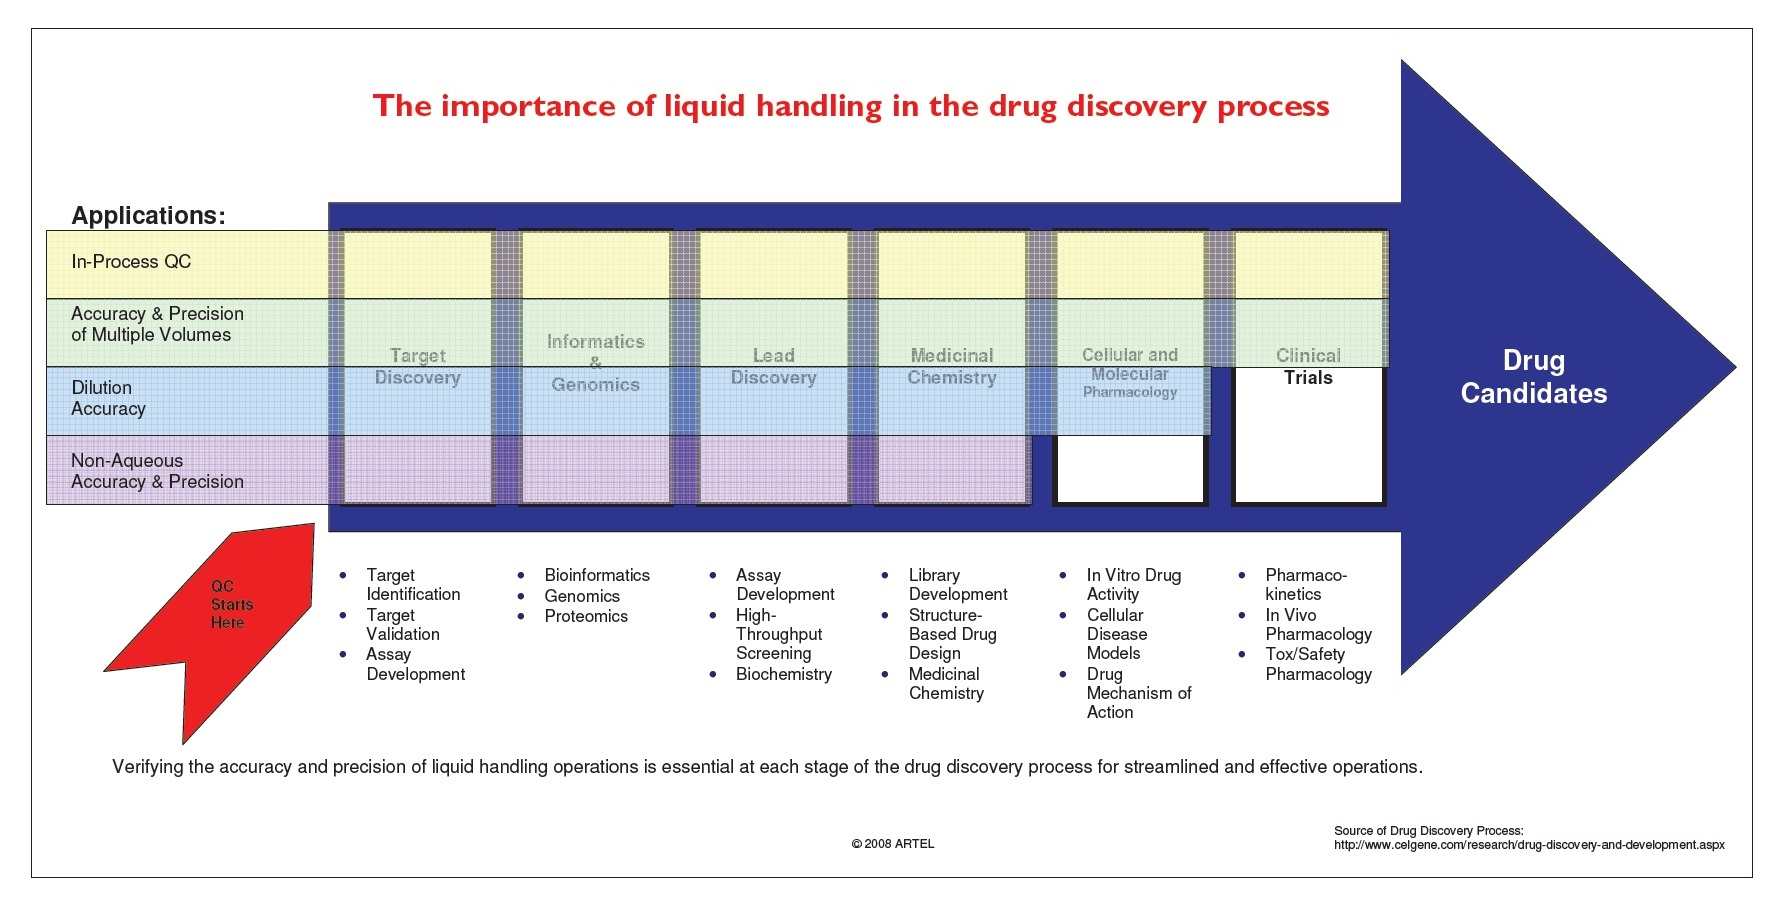 Figure 1 The importance of liquid handling in the drug discovery process